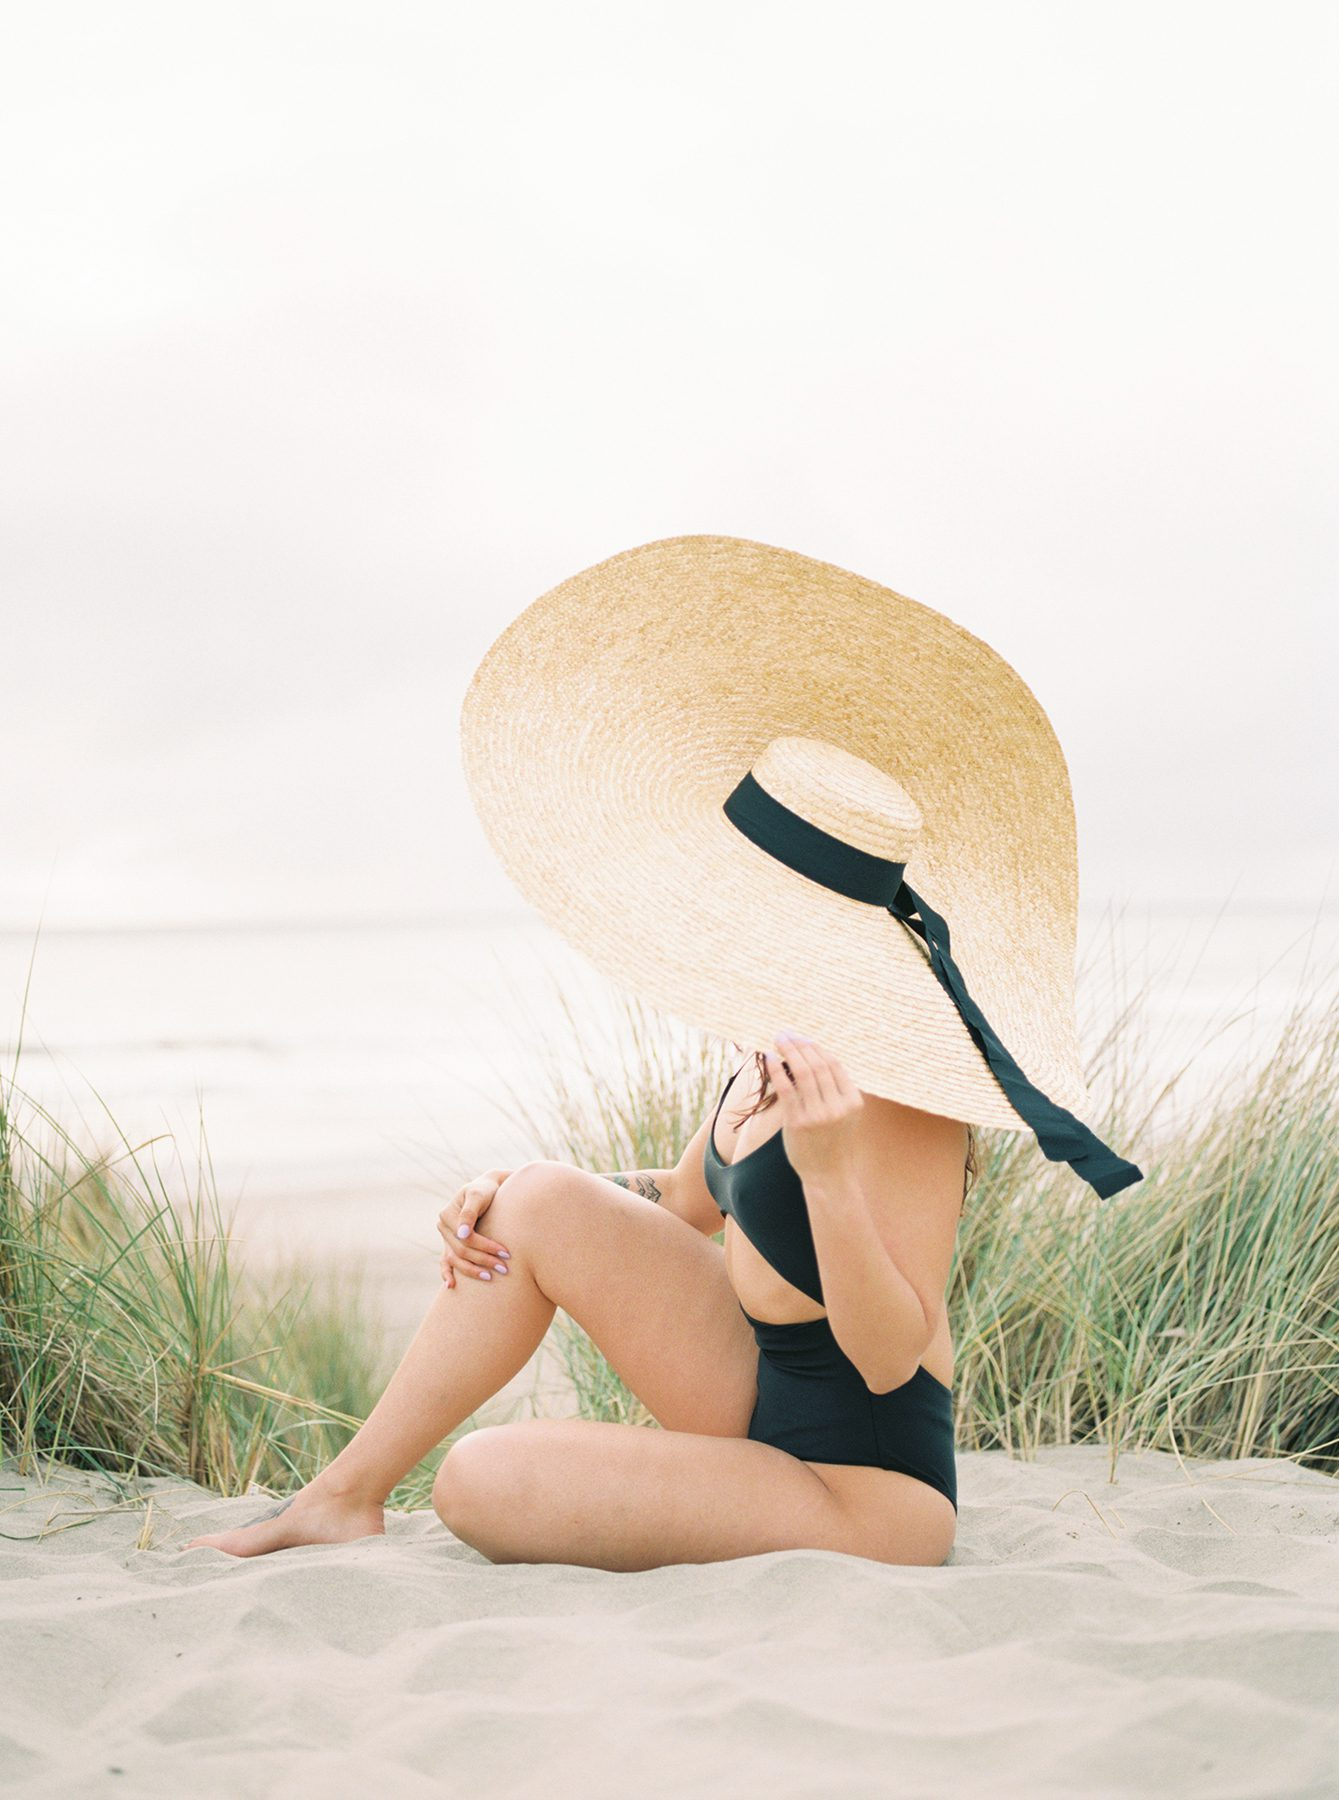 Woman in hat looking out at beach